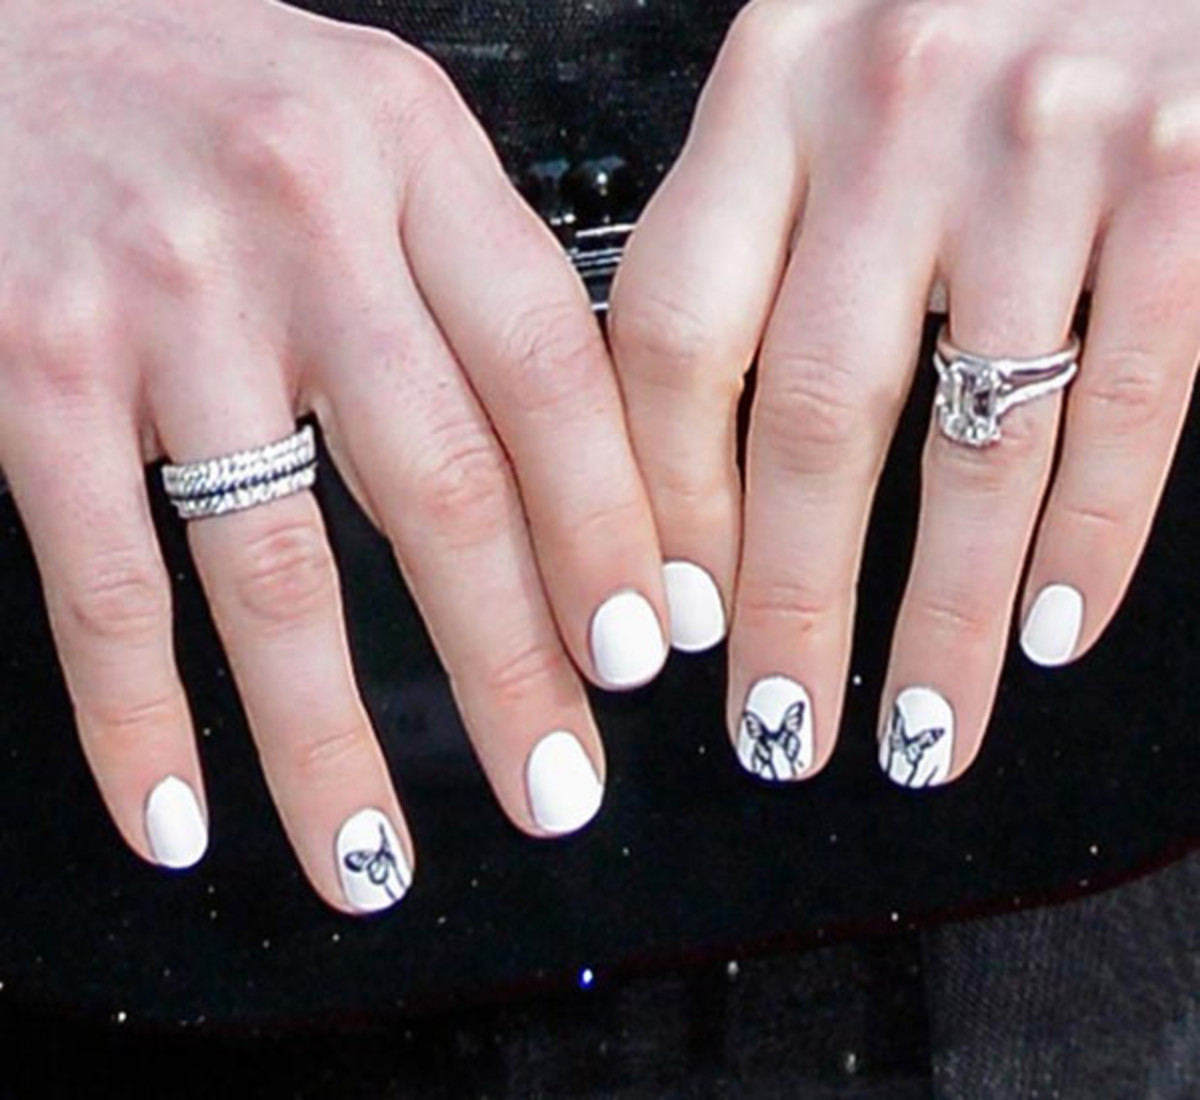 Anne Hathaway - SAG Awards 2013 nails